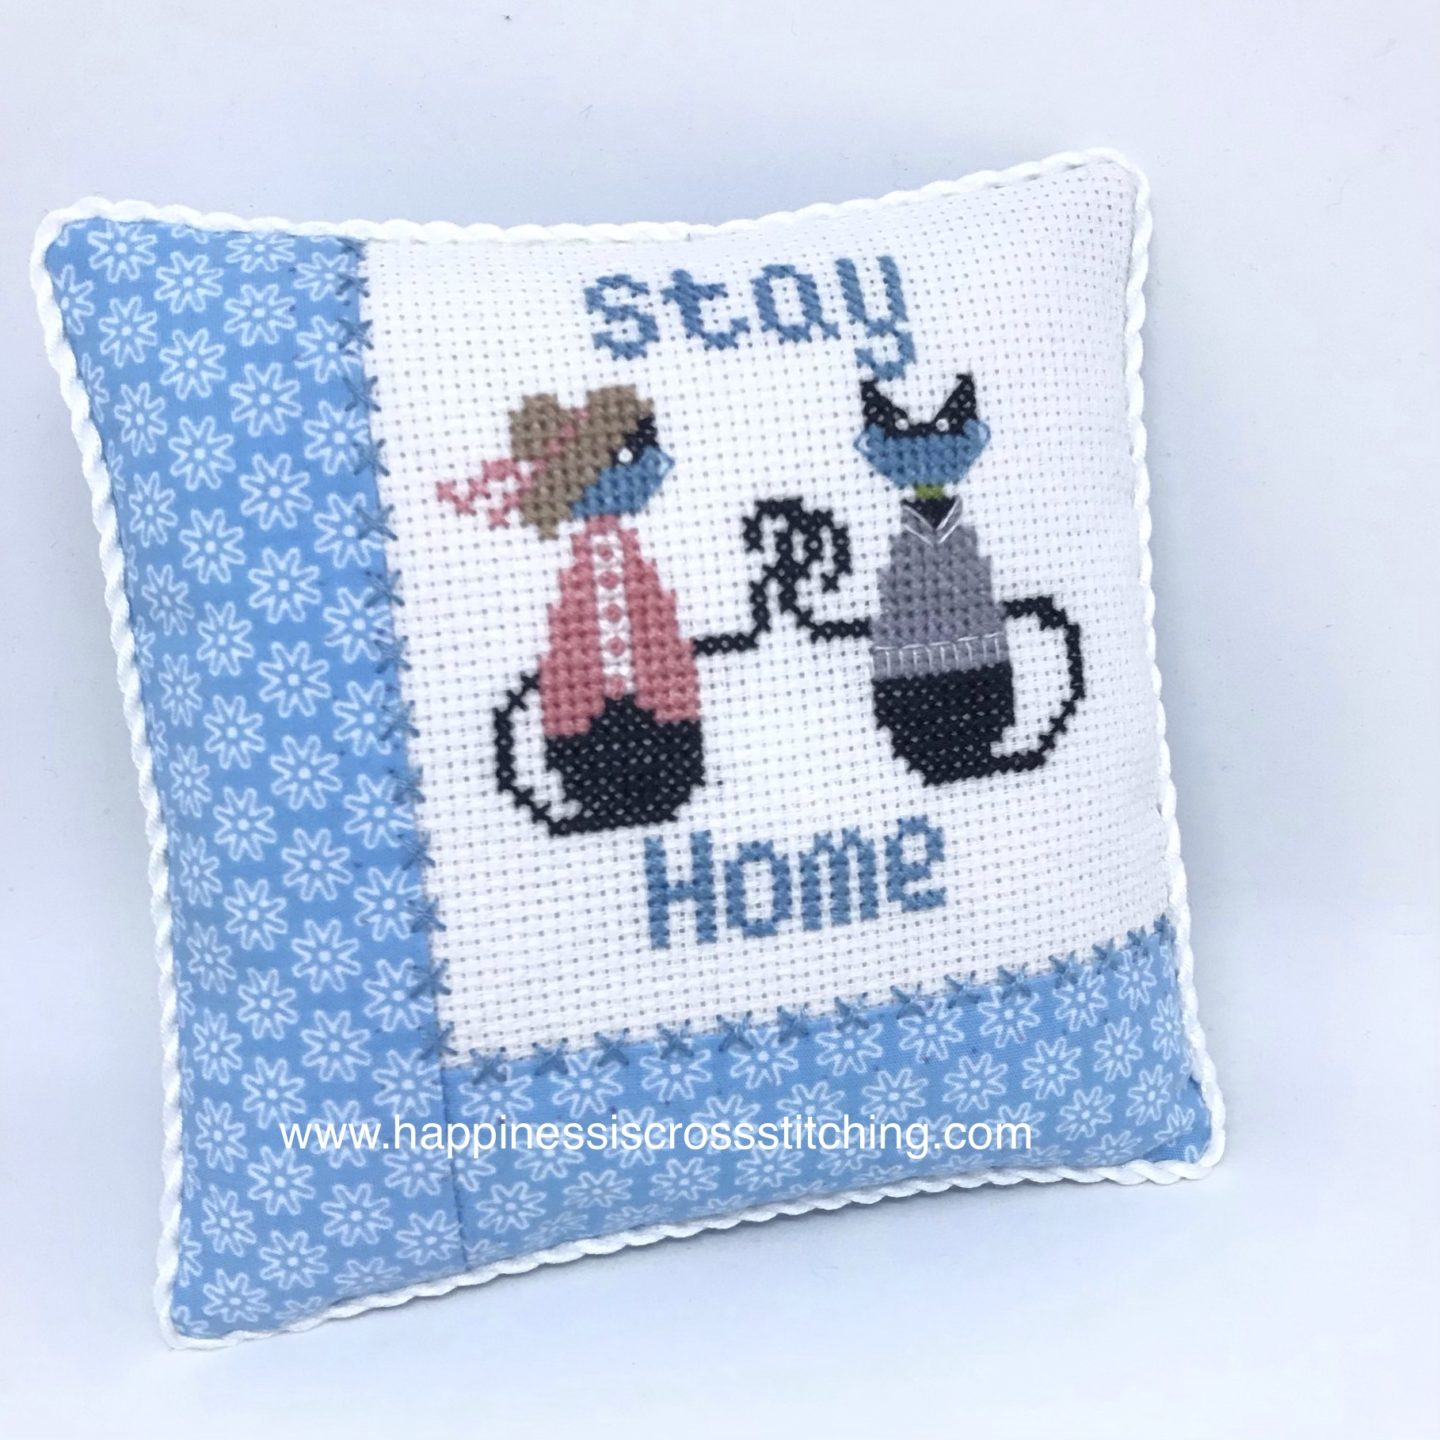 Cross stitched pillow featuring black mini cats crossed stitched onto white aida fabric. Miss mini cat is wearing a pink top and a pretty straw hat and Mr Mini Cat is wearing a grey jumper, they are both wearing blue facemaskes to protect them from the virus.